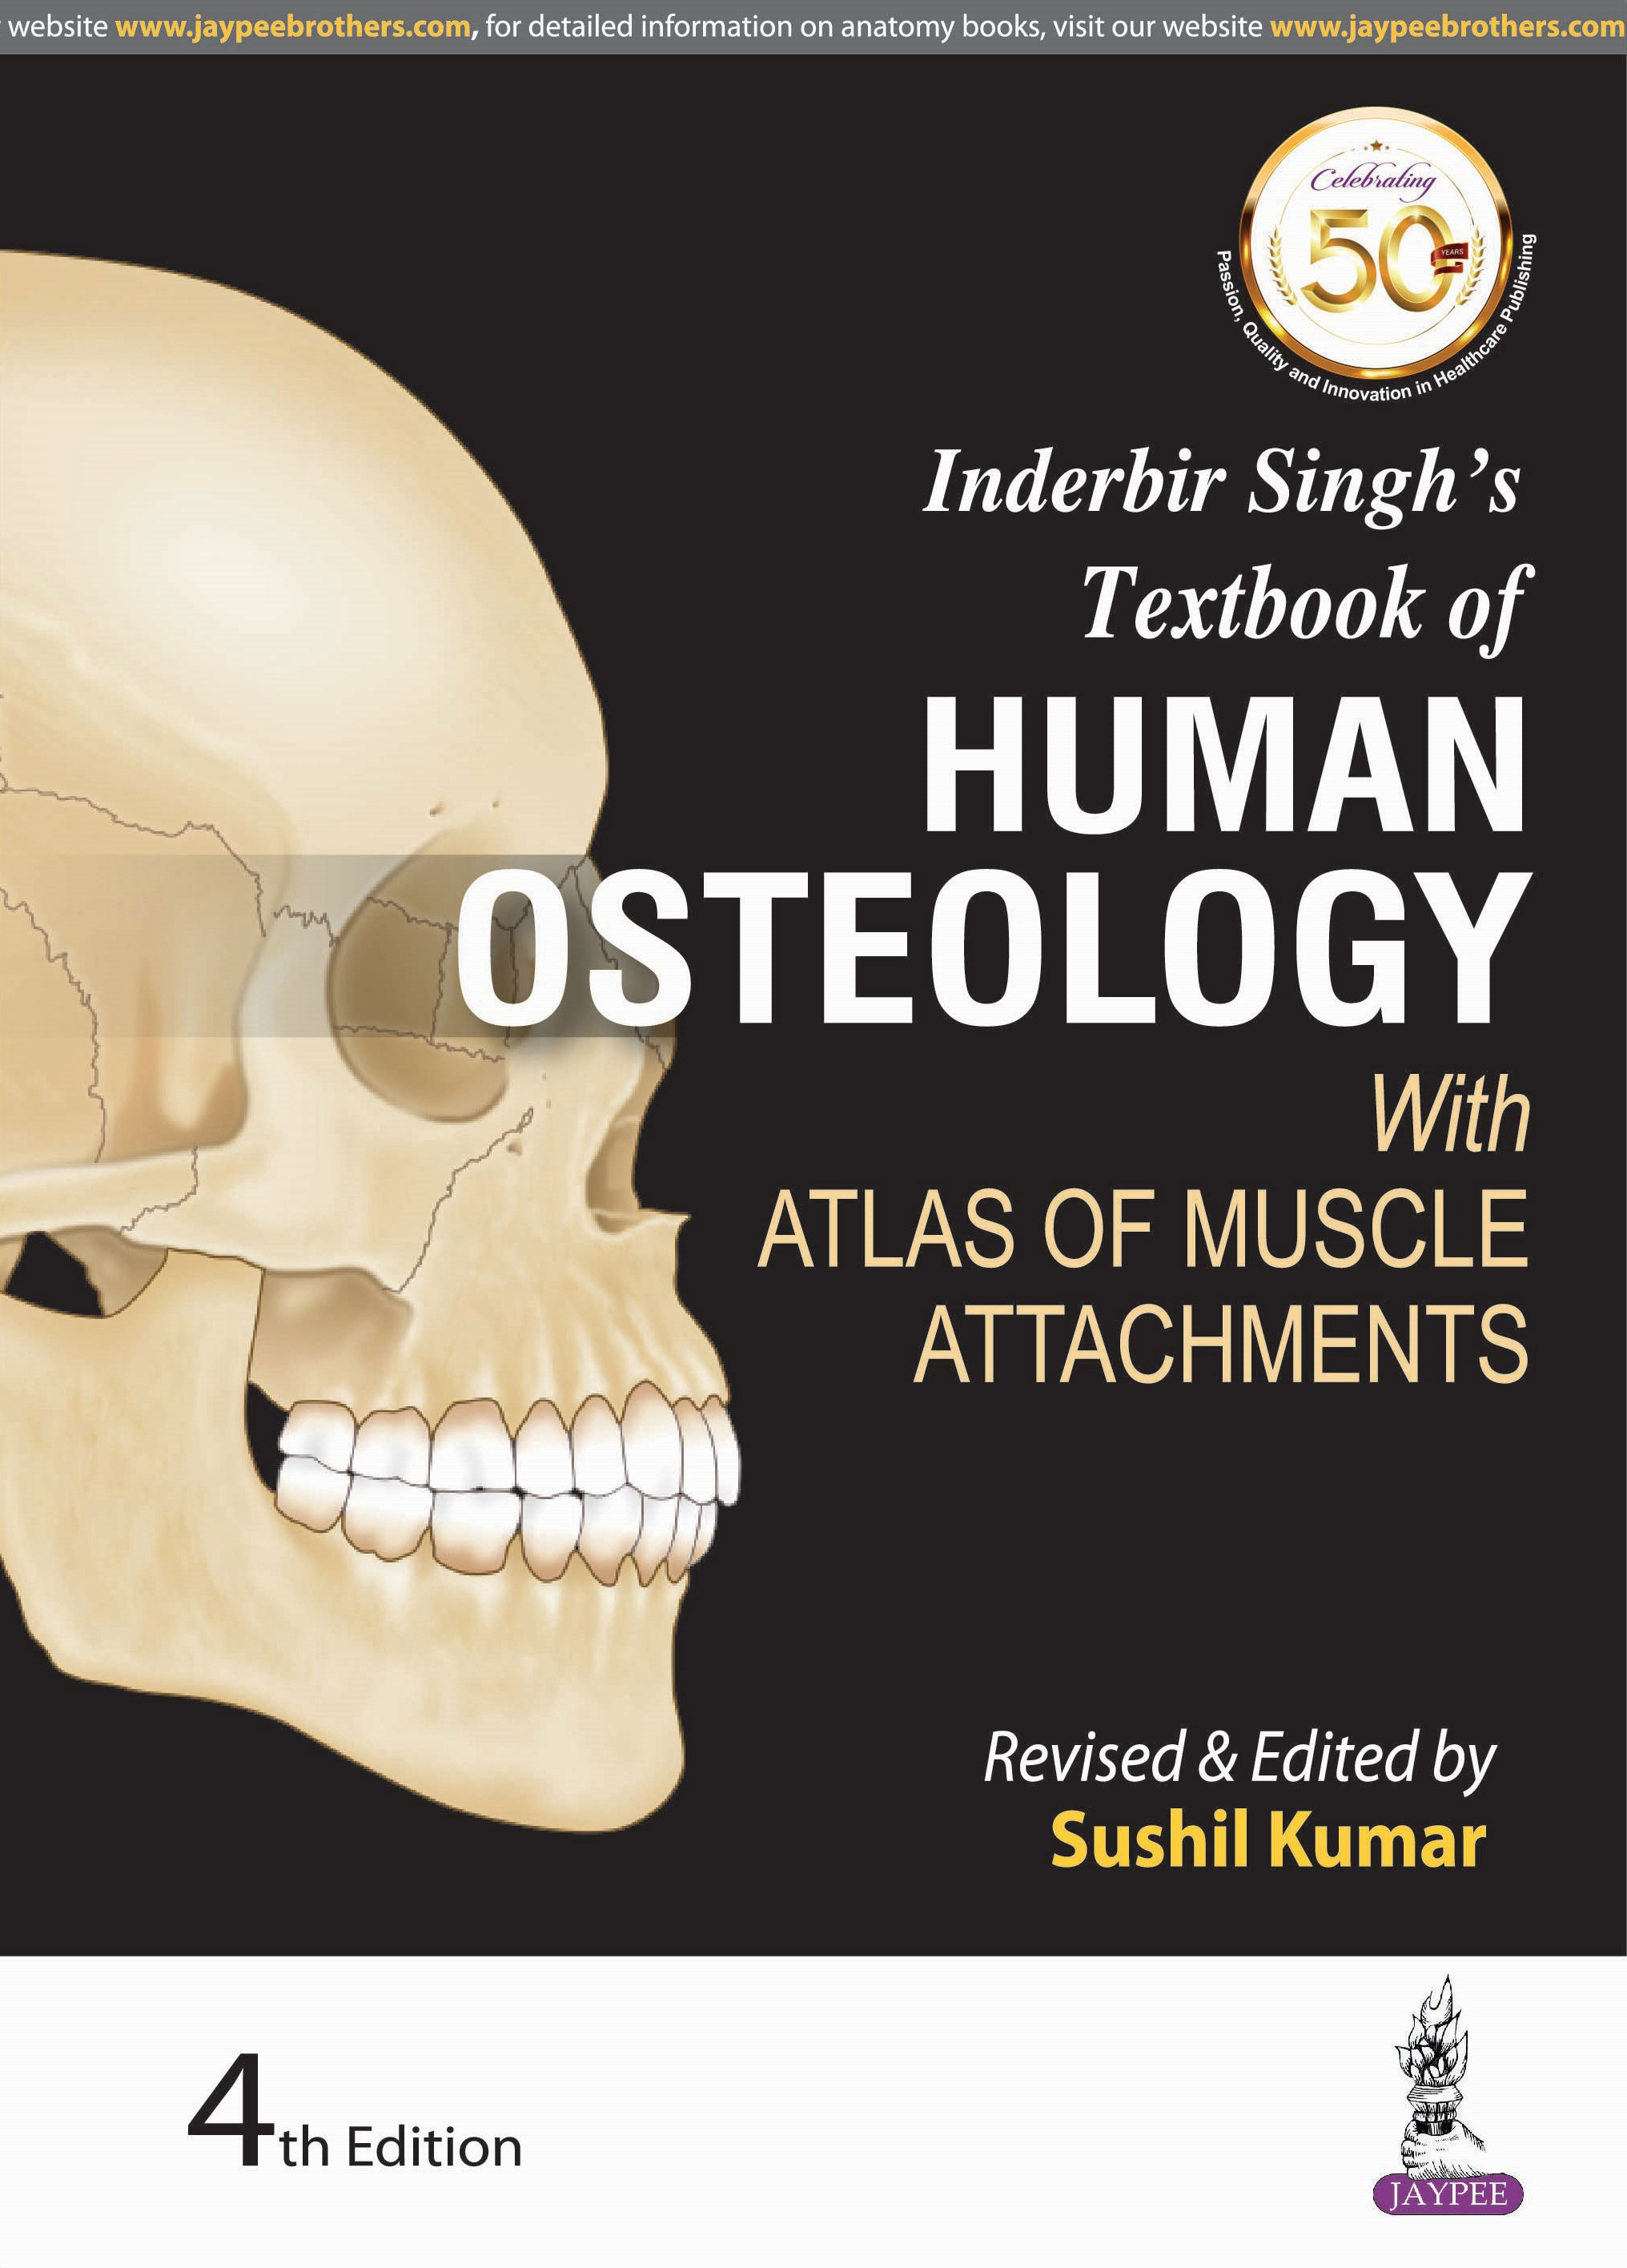 INDERBIR SINGHS TEXTBOOK OF HUMAN OSTEOLOGY WITH ATLAS OF MUSCLE ATTACHMENTS